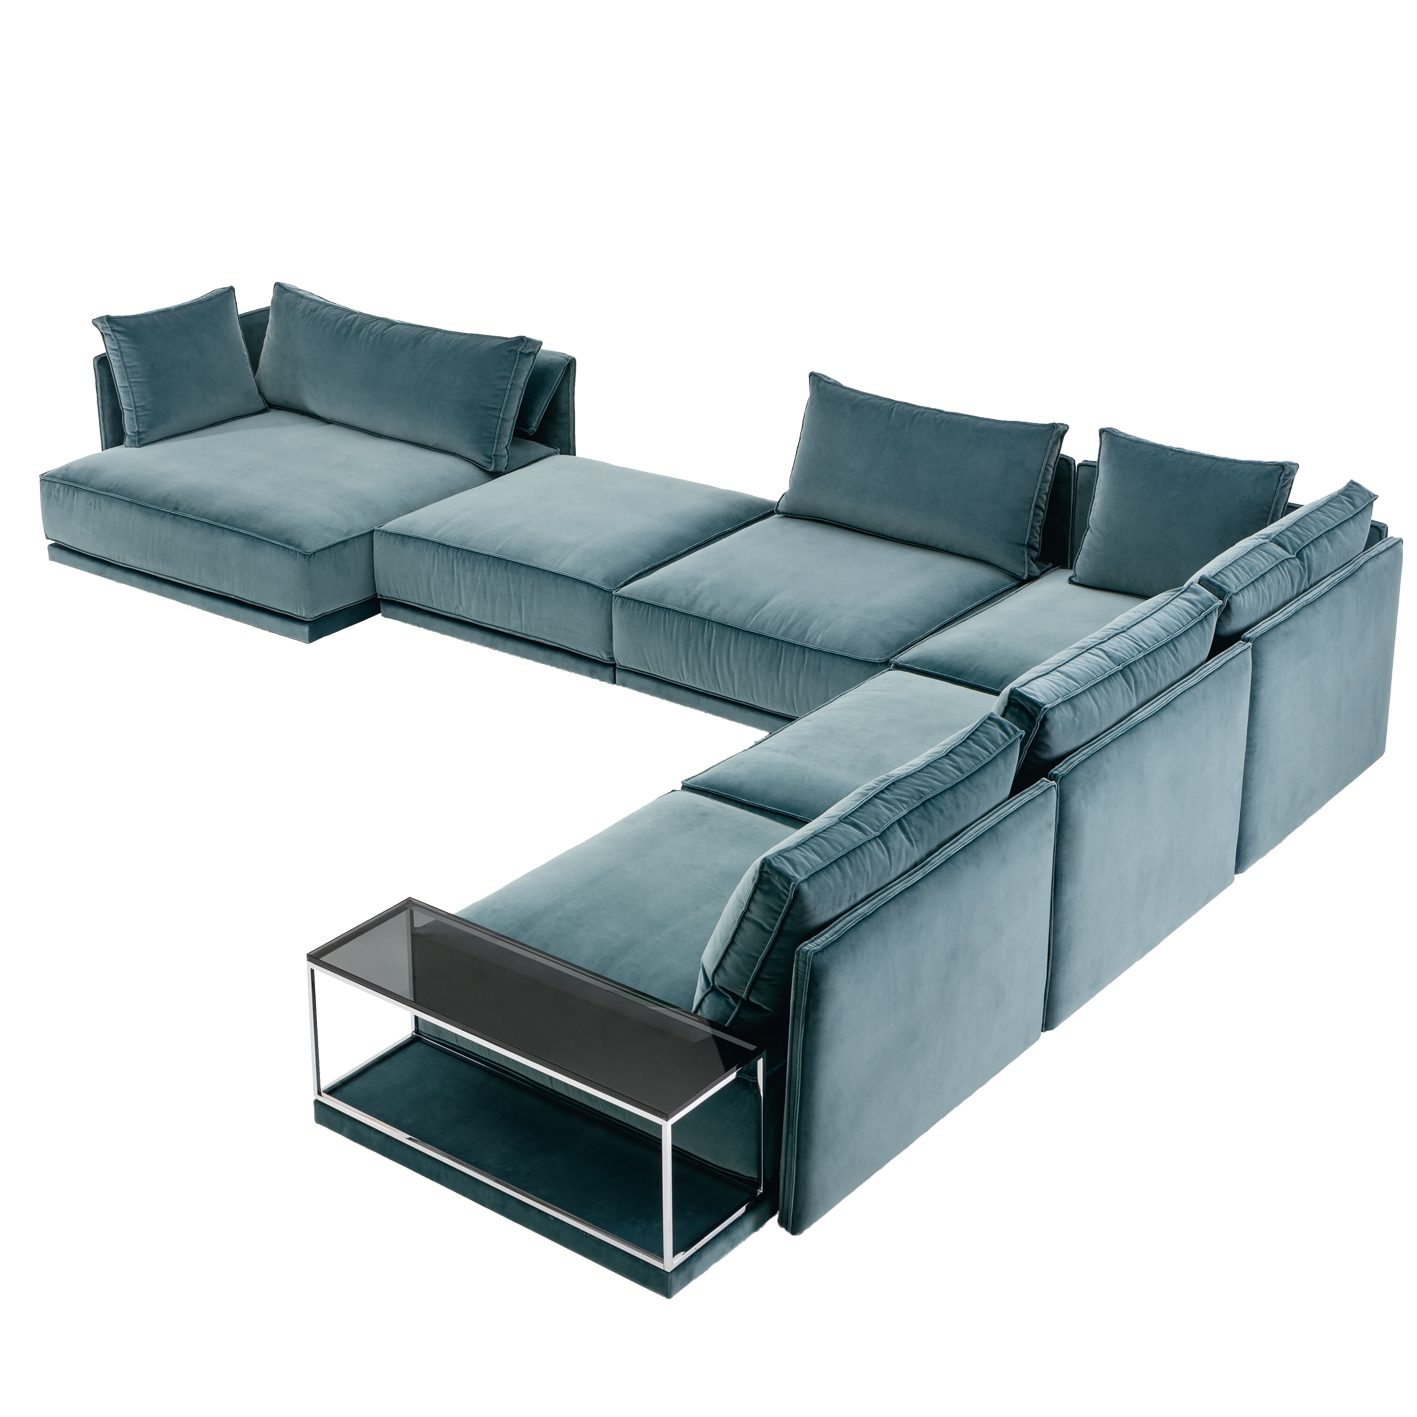 Ecksofa Baukasten Sofa 3 Ip Design Cube Lounge Sofa